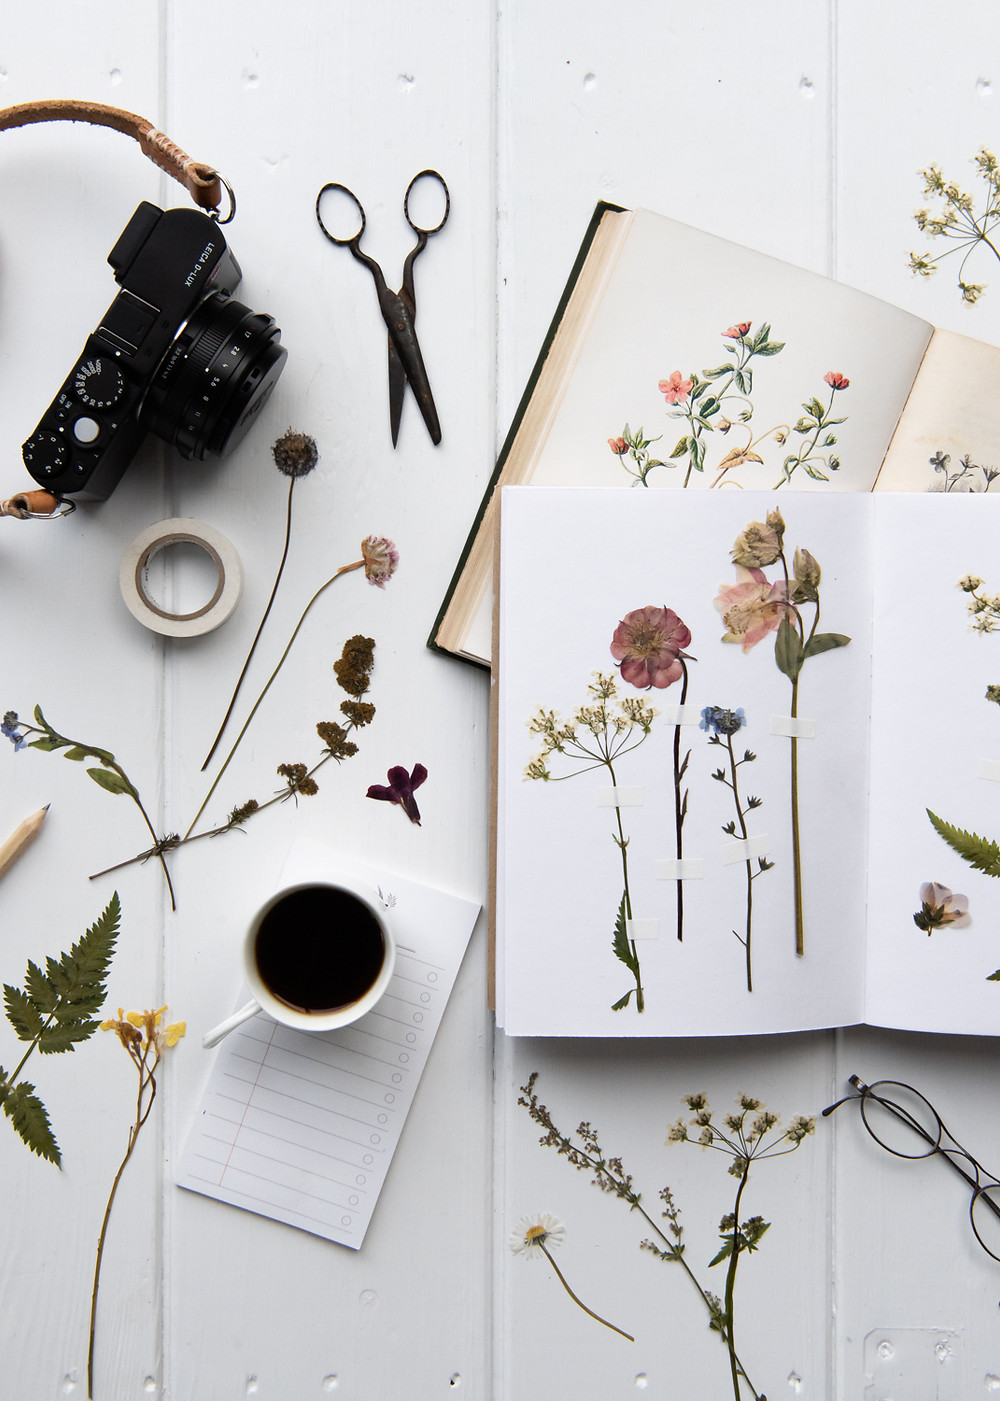 pressed flowers on a white table with a Leica d-lux 109, a simple guide to choosing a camera